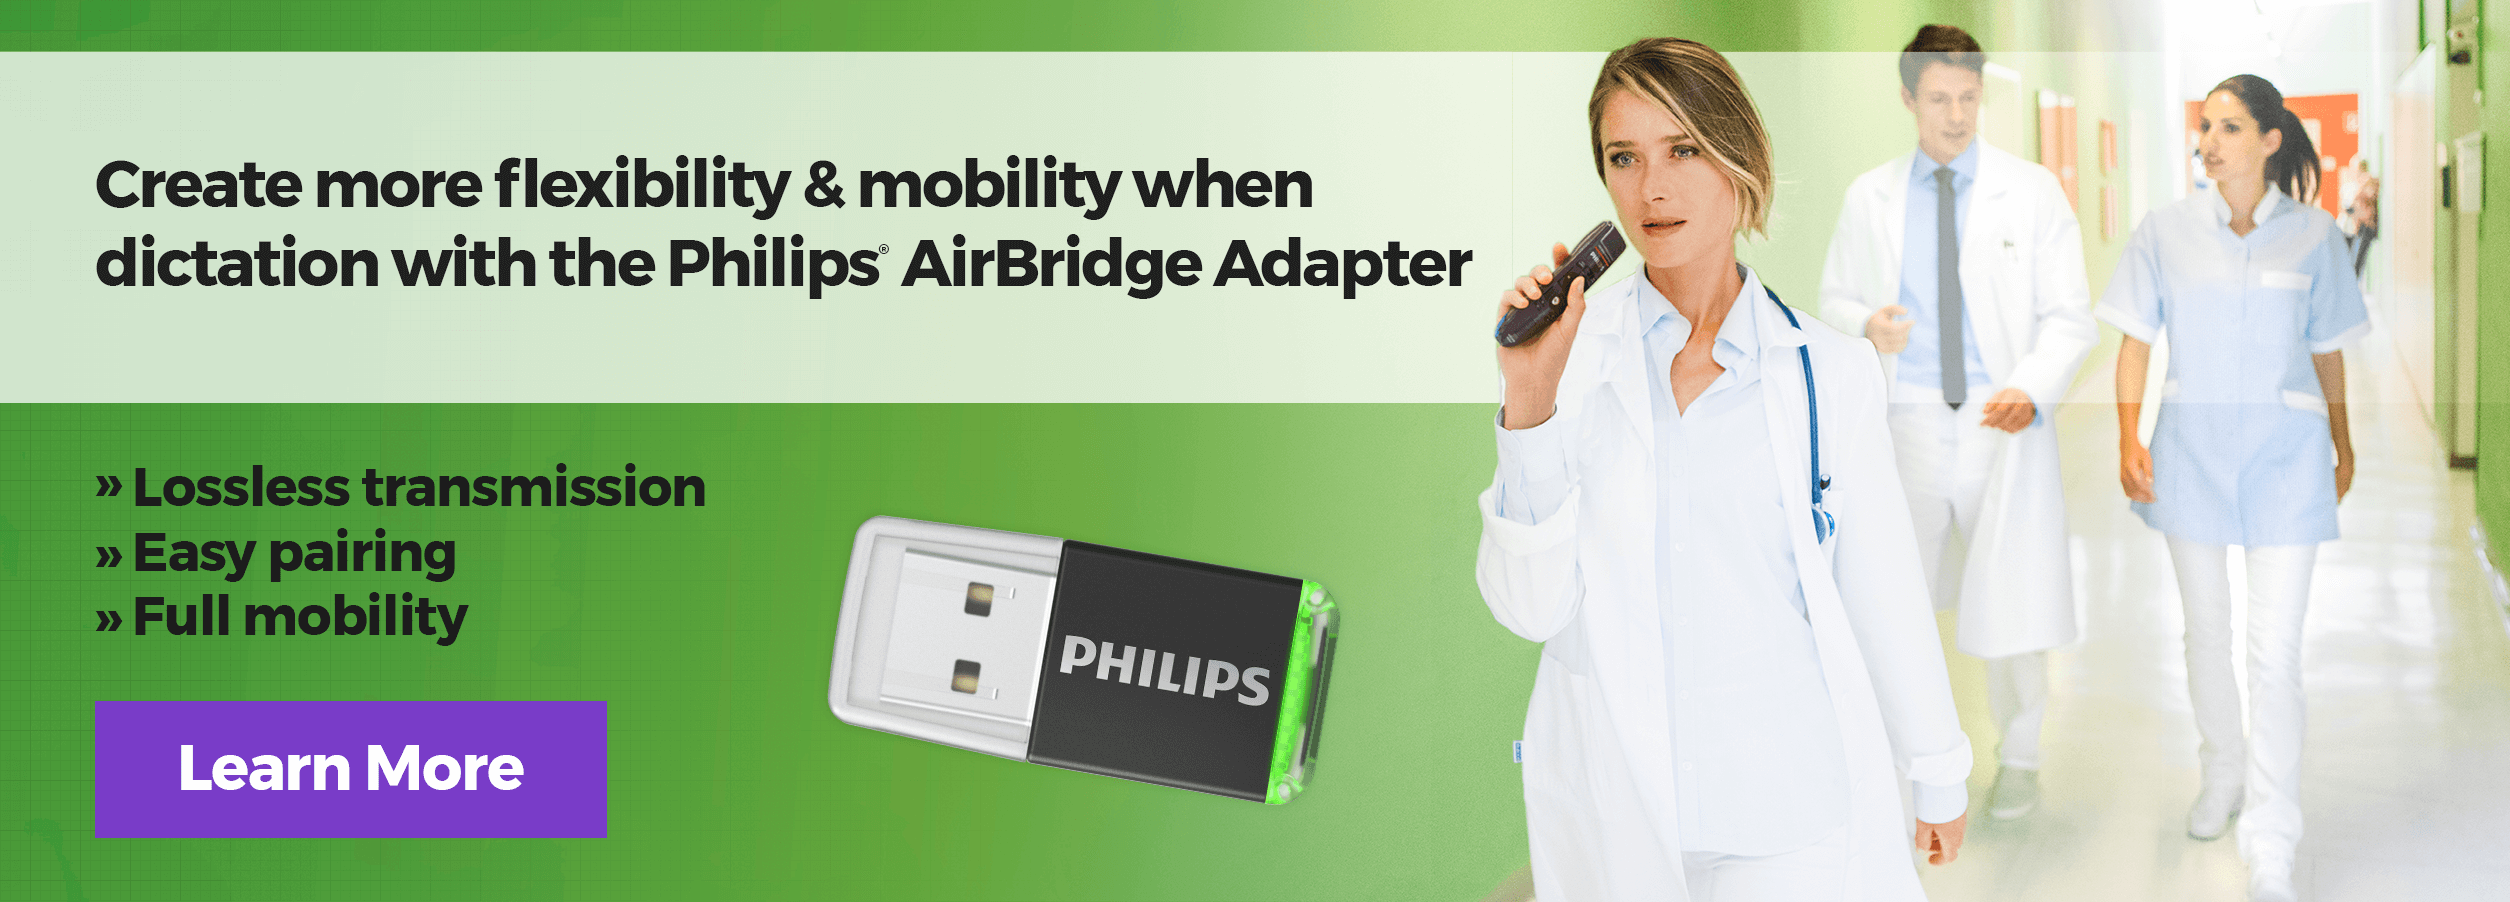 Create more flexibility & mobility when dictation with the Philips® AirBridge Adapter